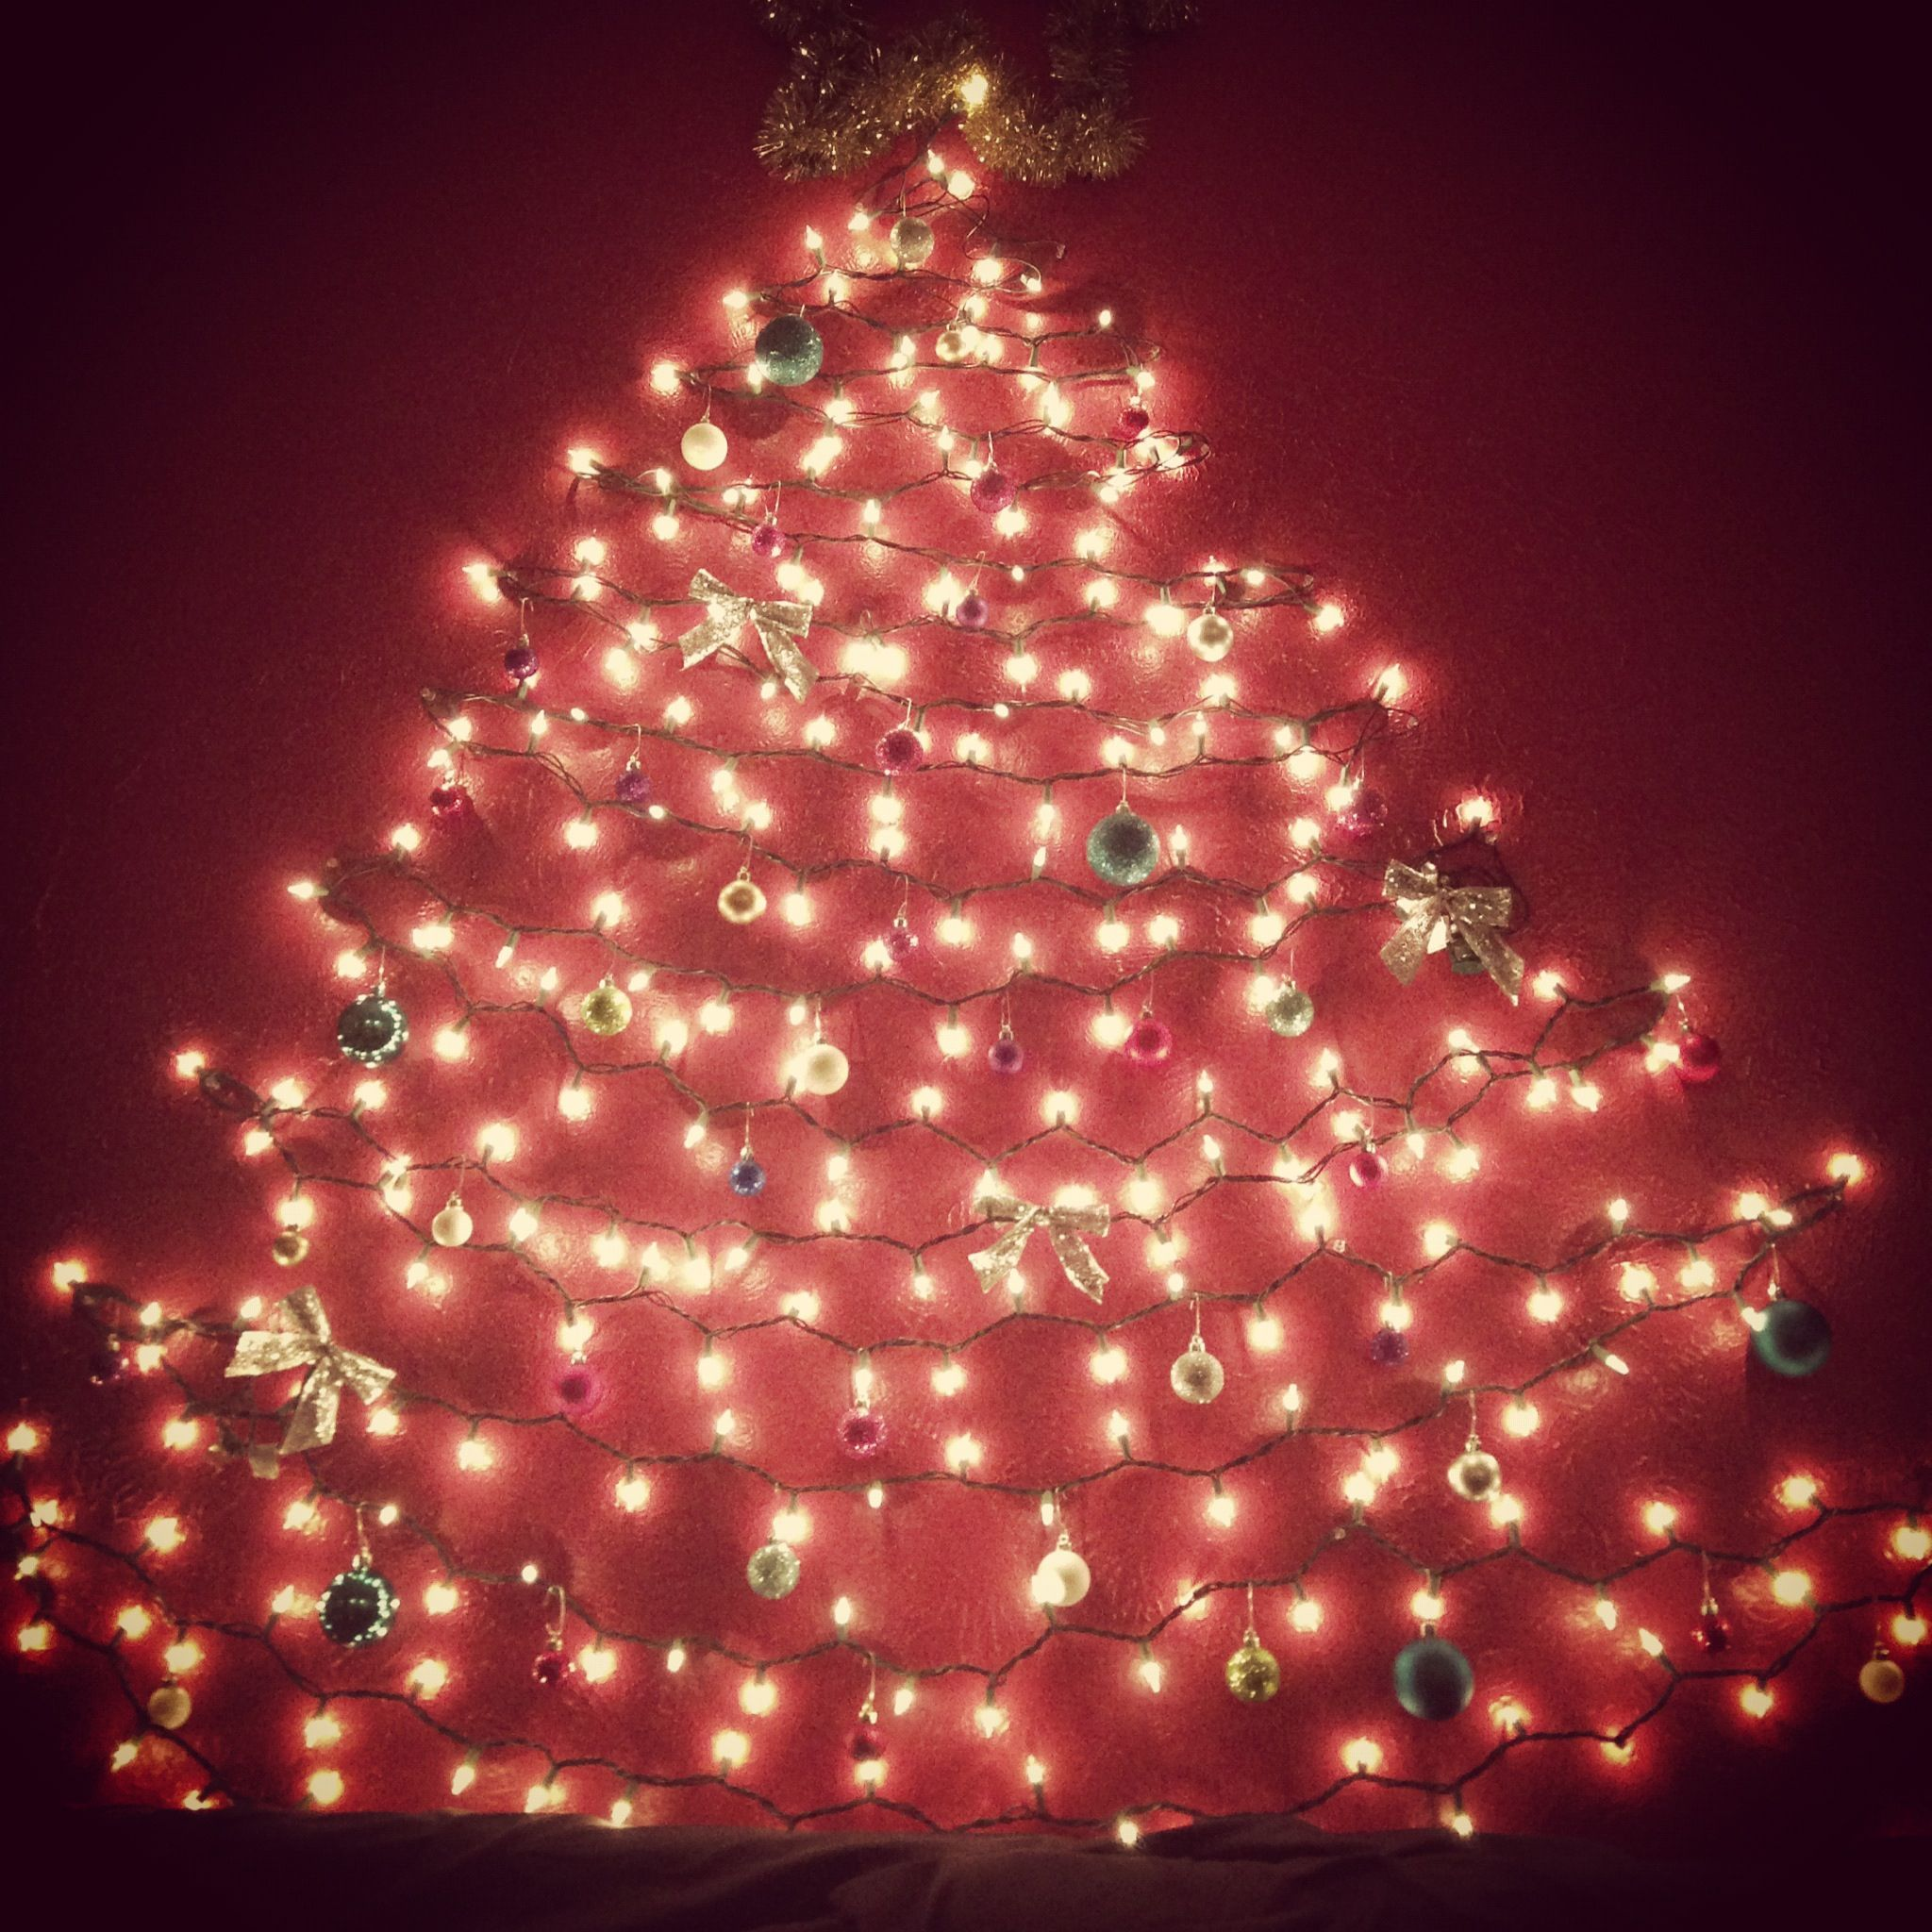 Lights On Wall In The Shape Of A Tree And Decorated For Dorm Room Christmas D